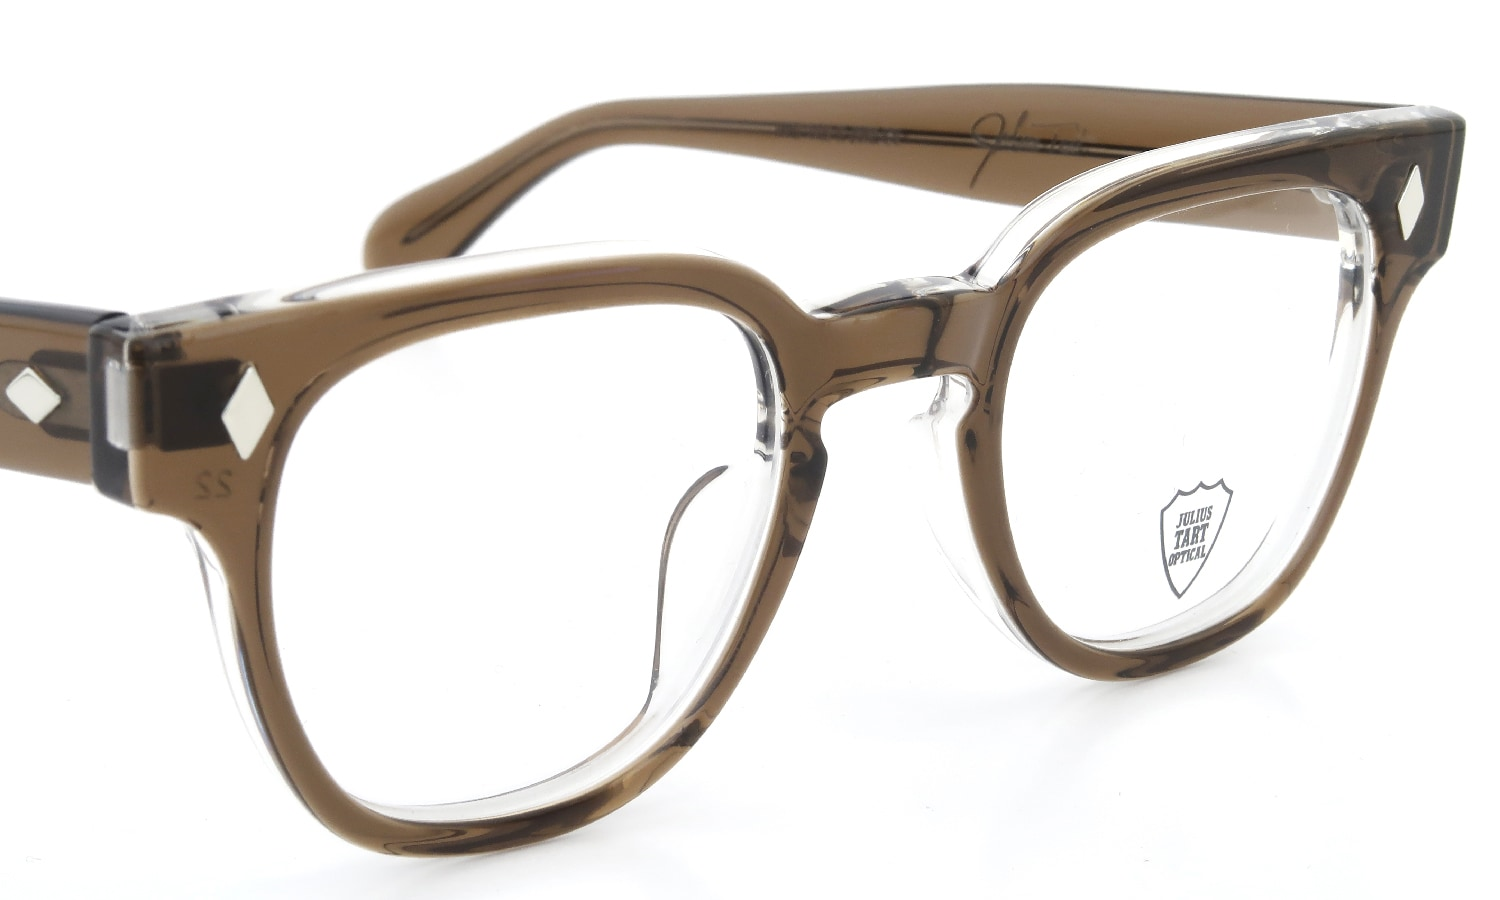 JULIUS TART OPTICAL BRYAN PL-010K